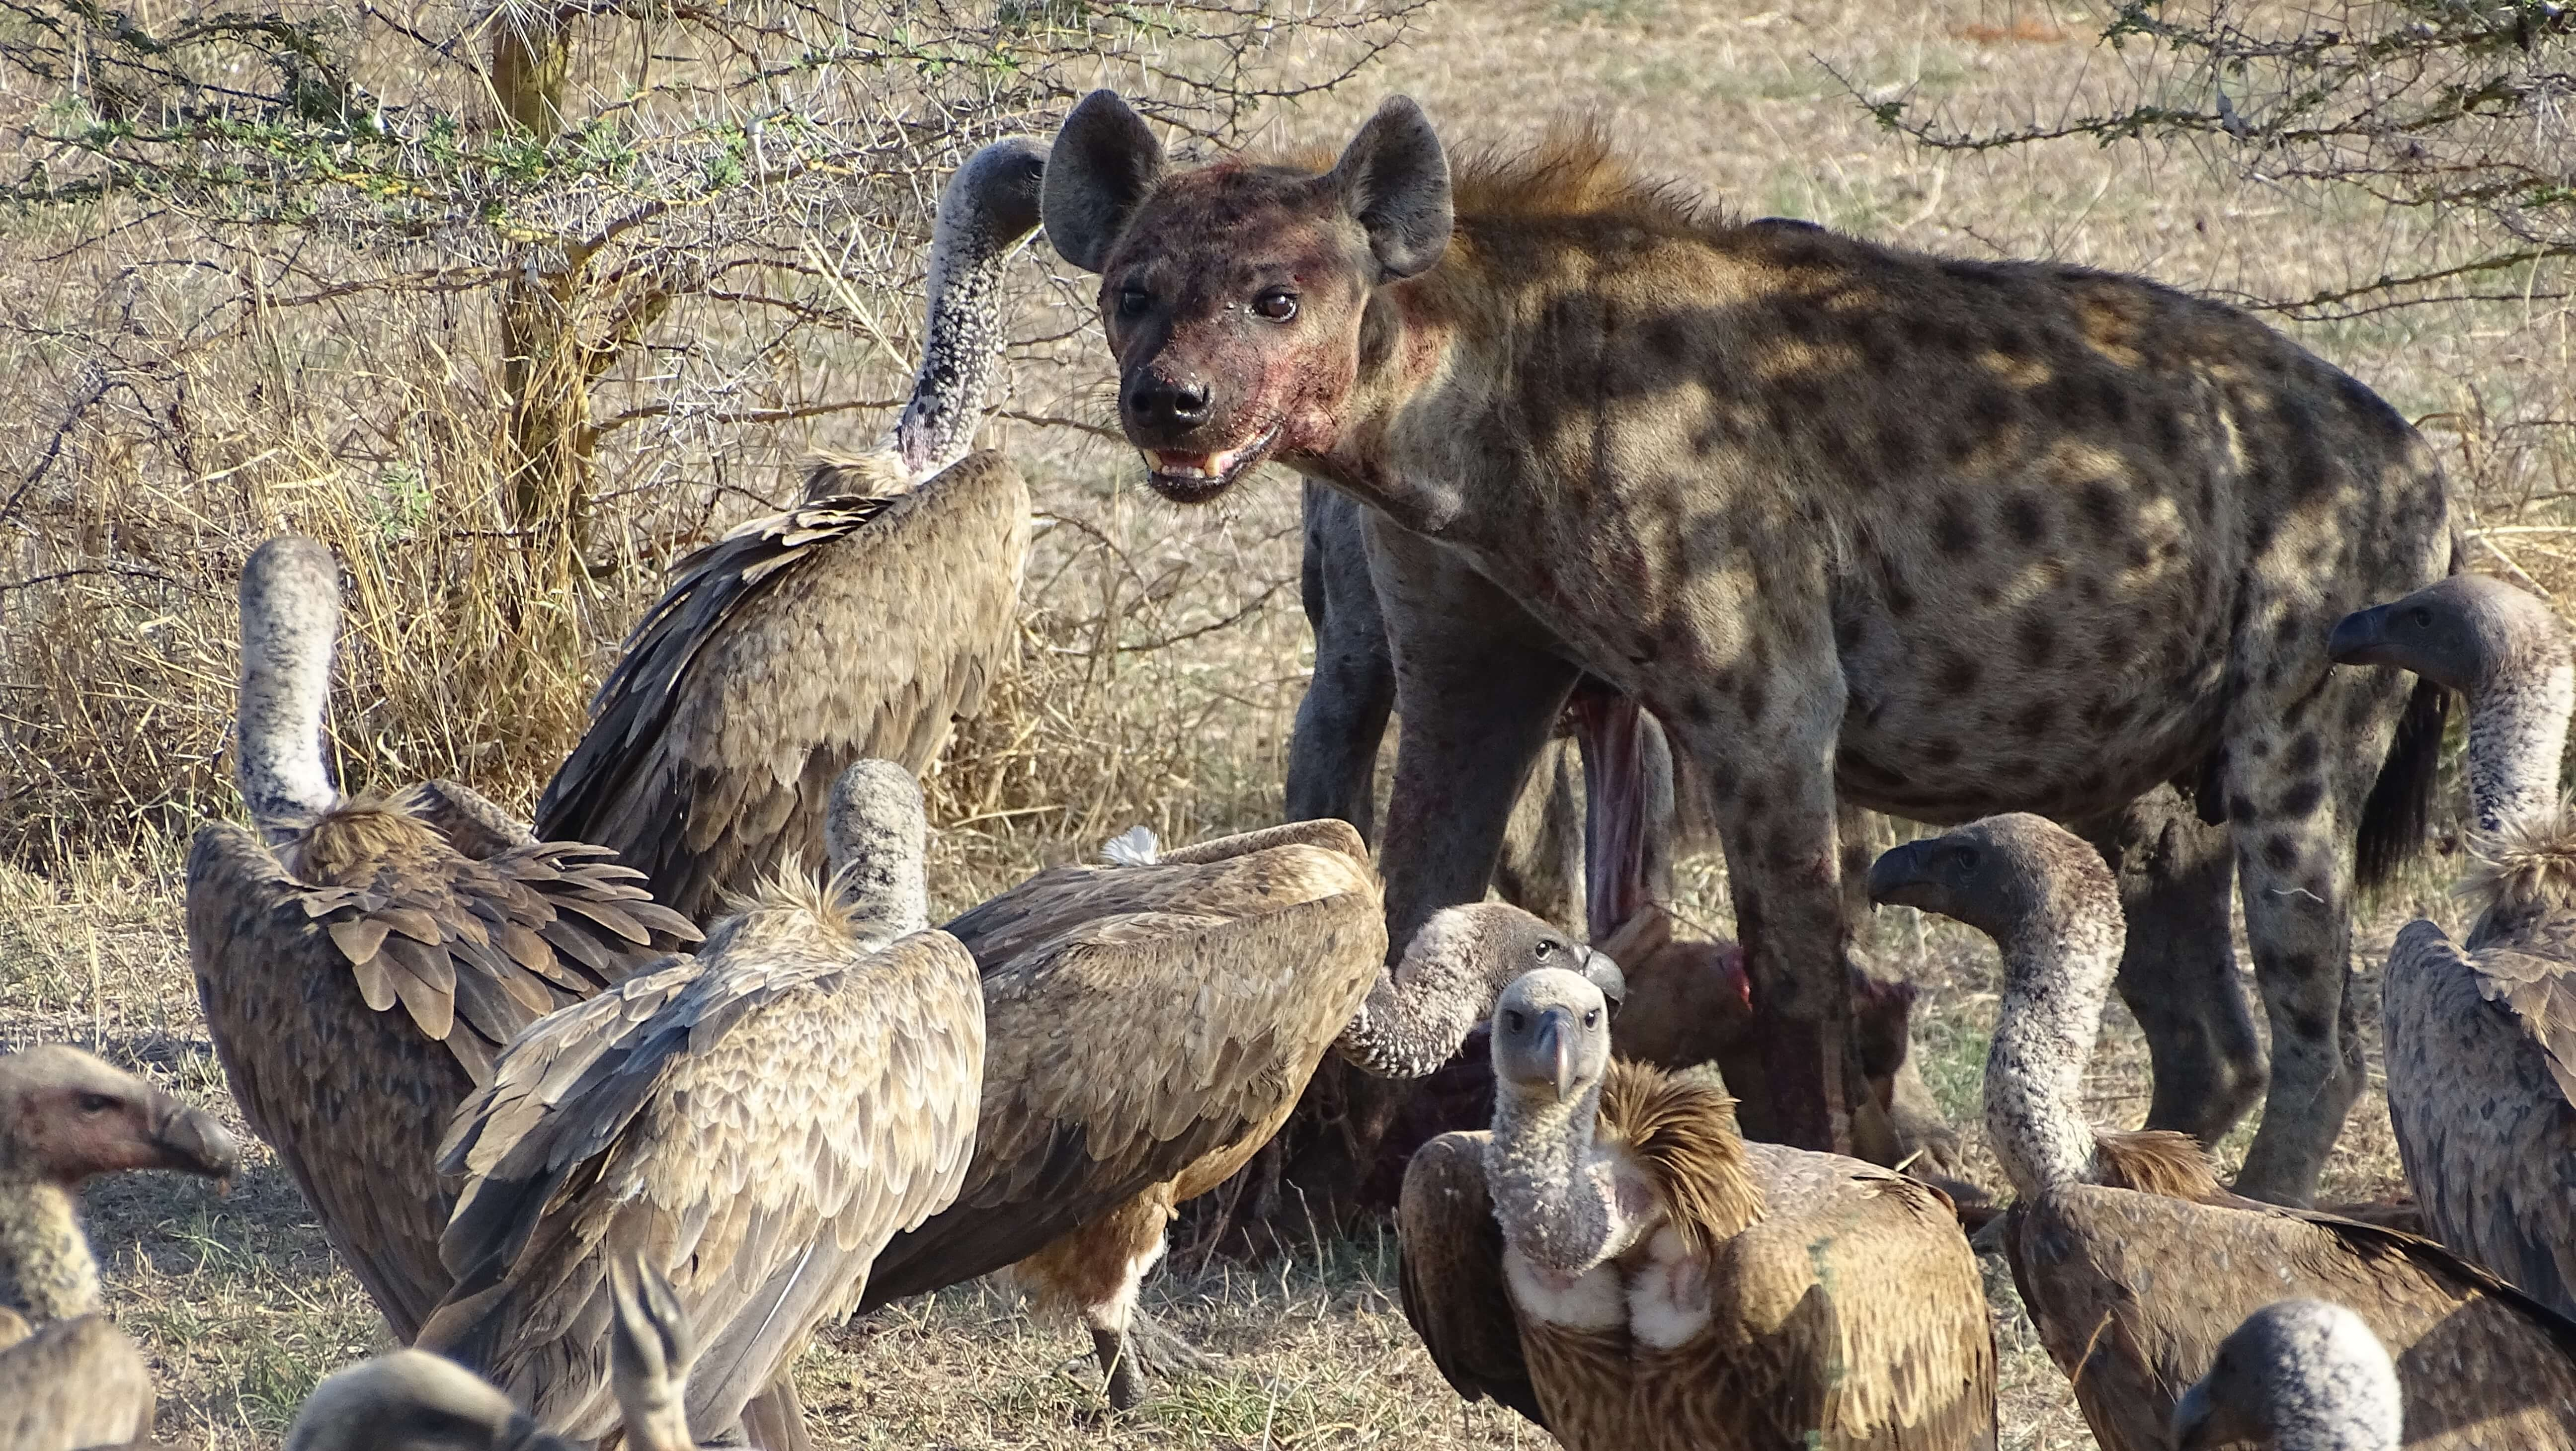 Spotted hyena en gieren in Selous Game Reserve Tanzania